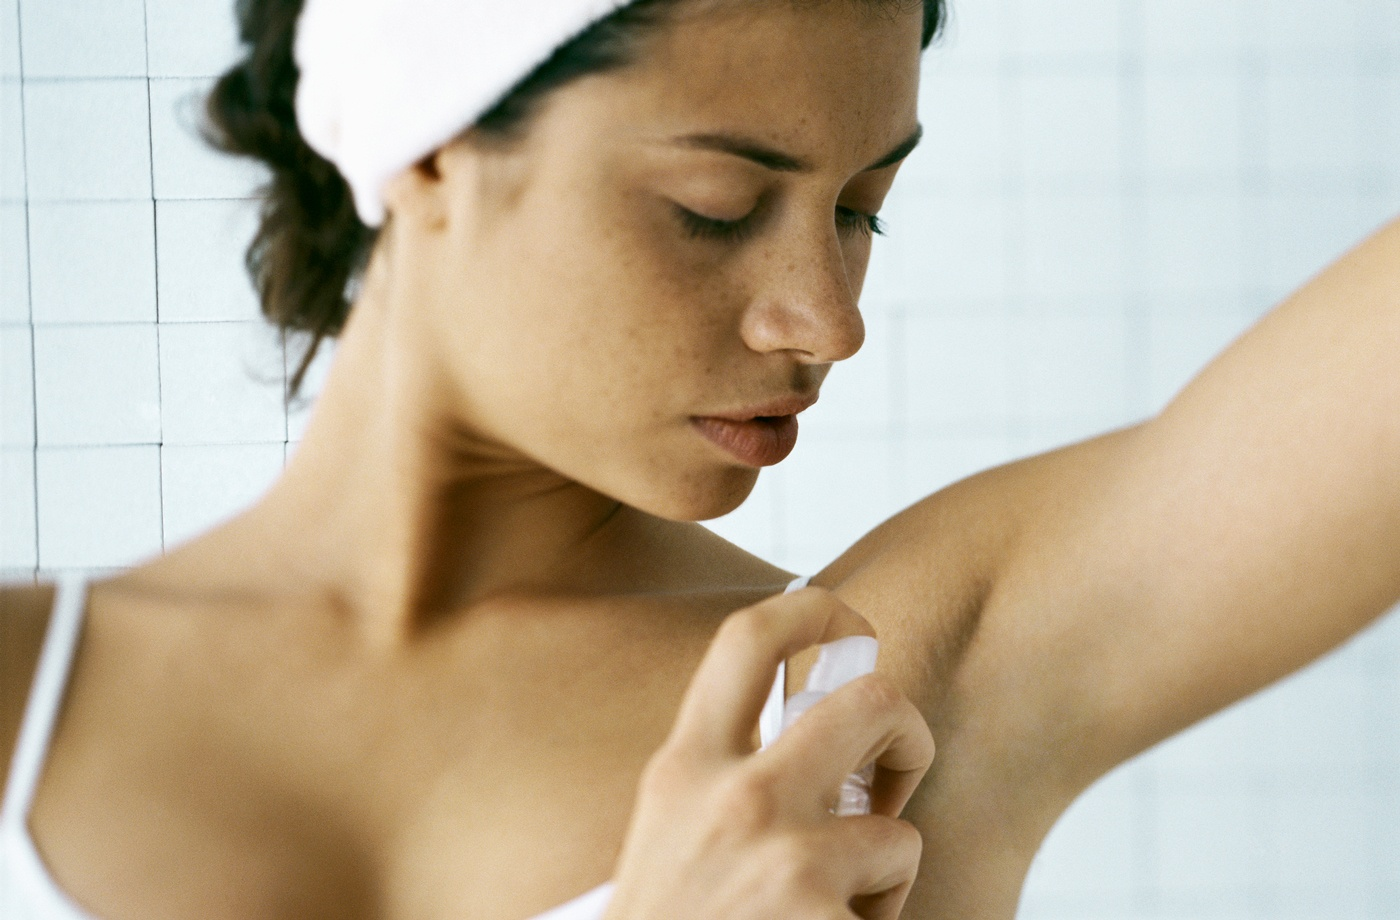 Stinky armpits are no match for these editor-approved, aluminum-free deodorants